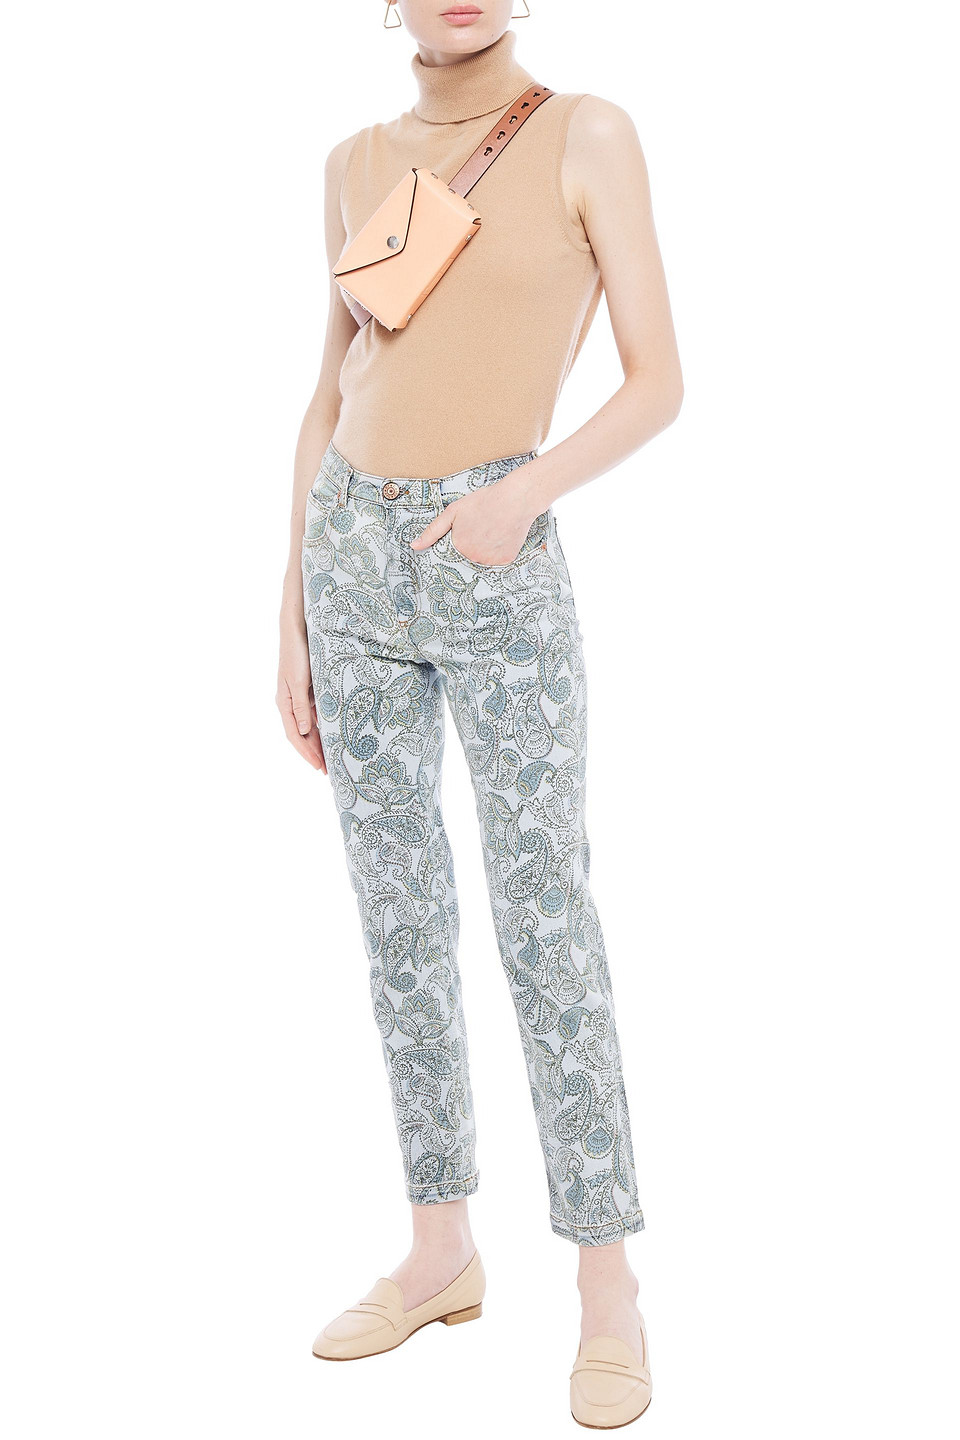 See by Chloé | See By Chloe Woman Printed High-rise Slim-leg Jeans Light Blue | Clouty